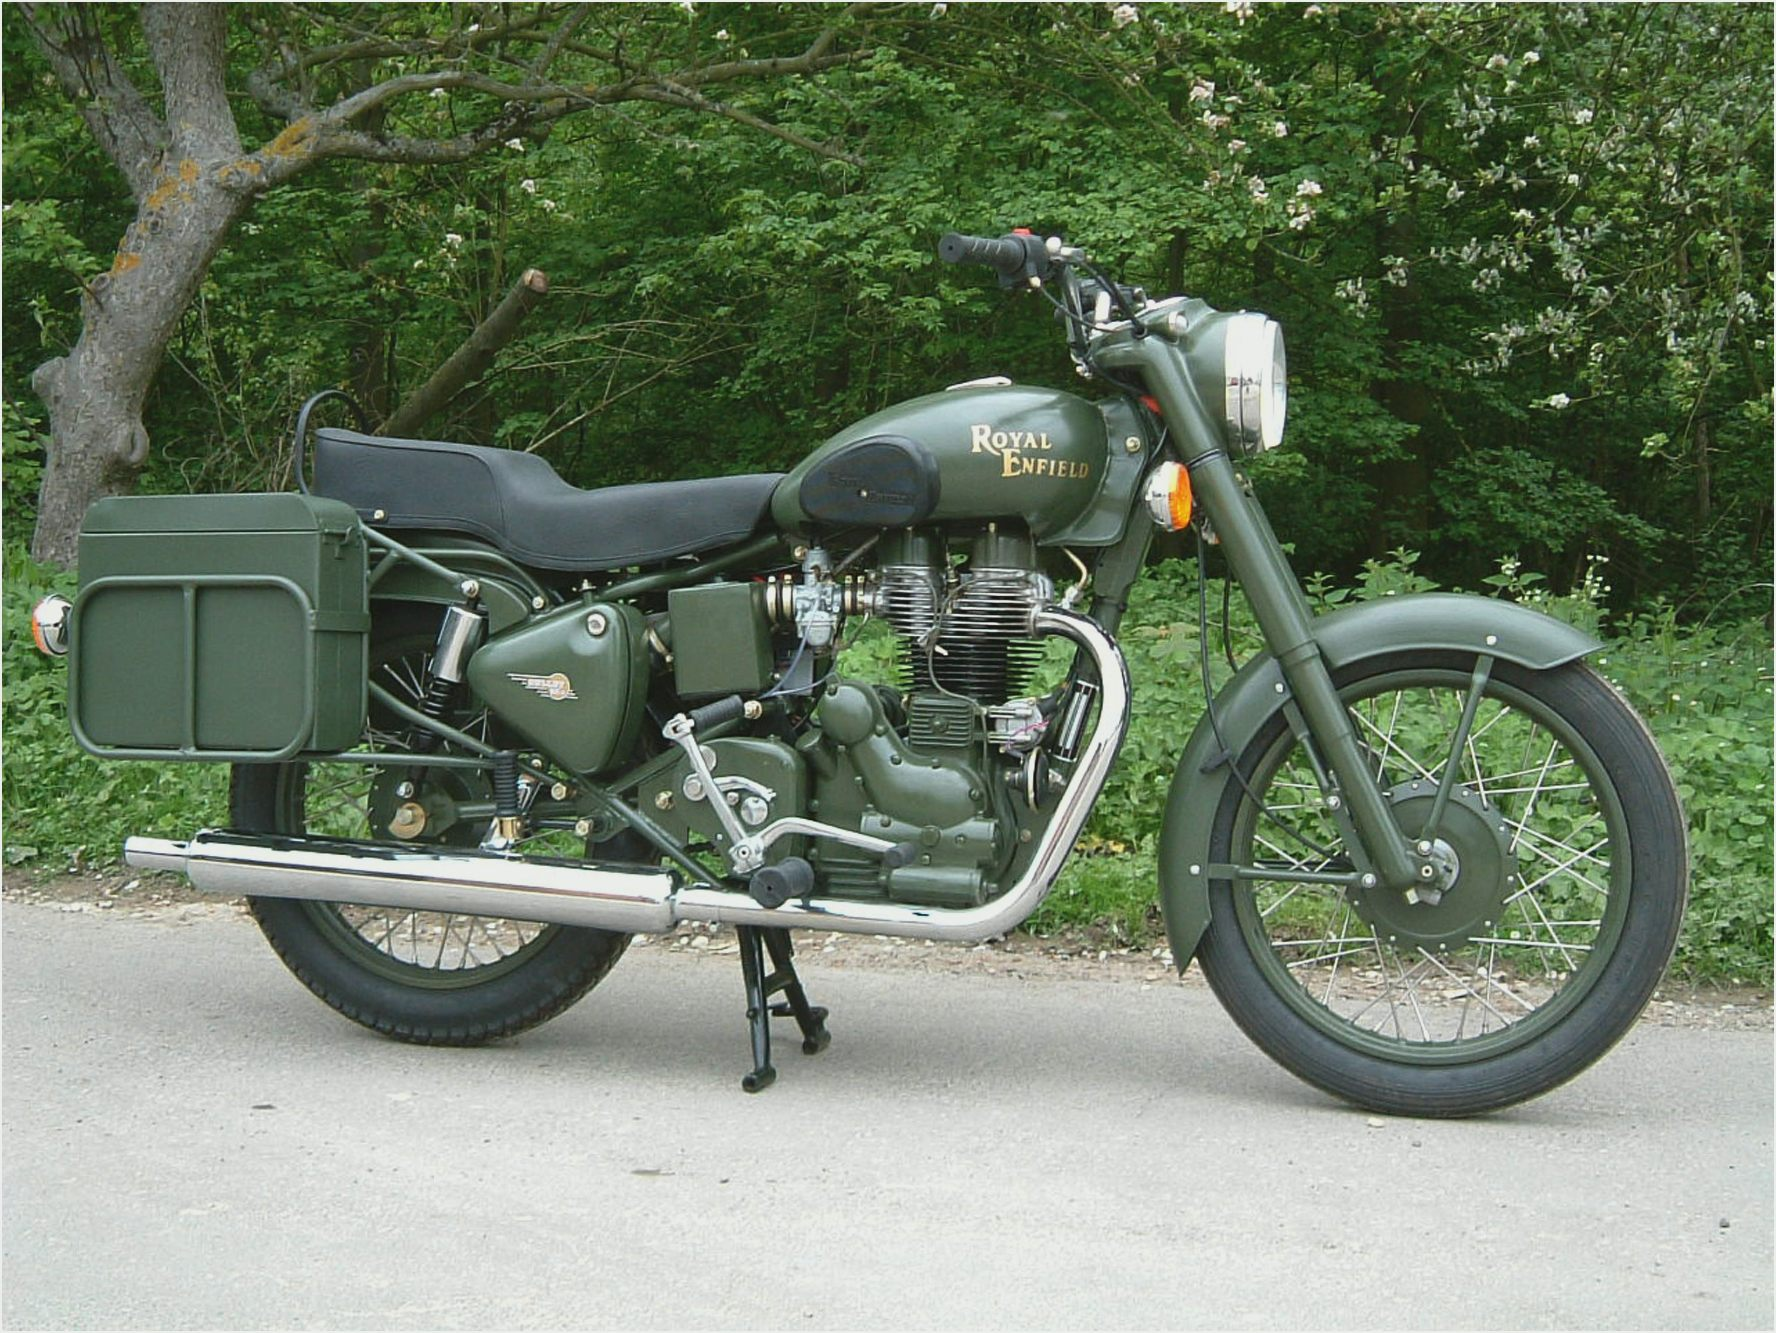 Royal Enfield Bullet 500 Army 1999 images #175406